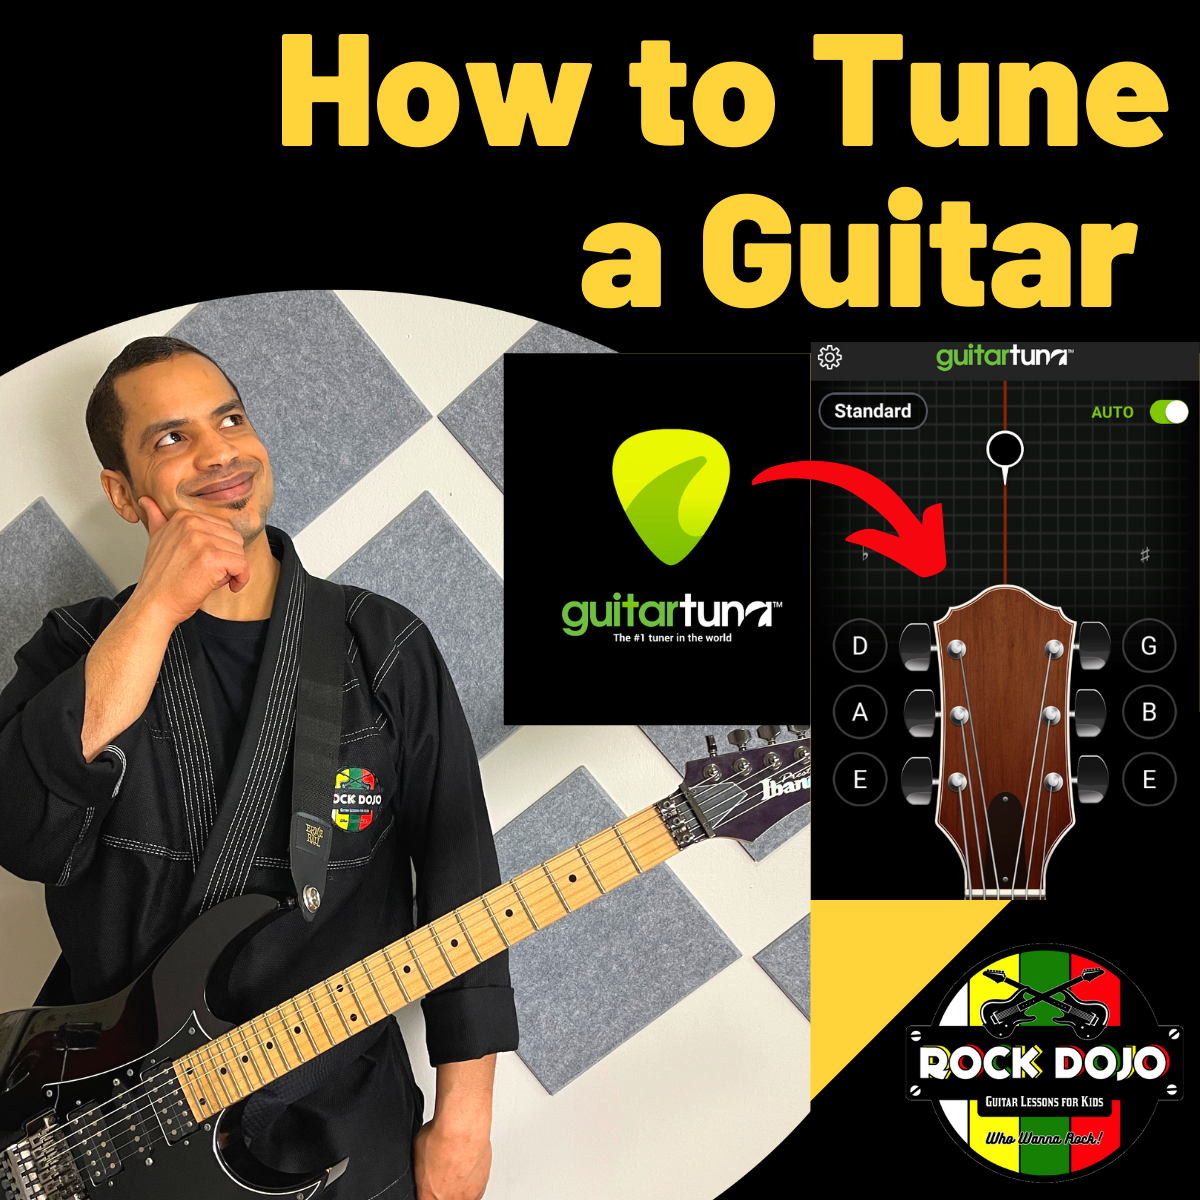 Learn how to tune a guitar.